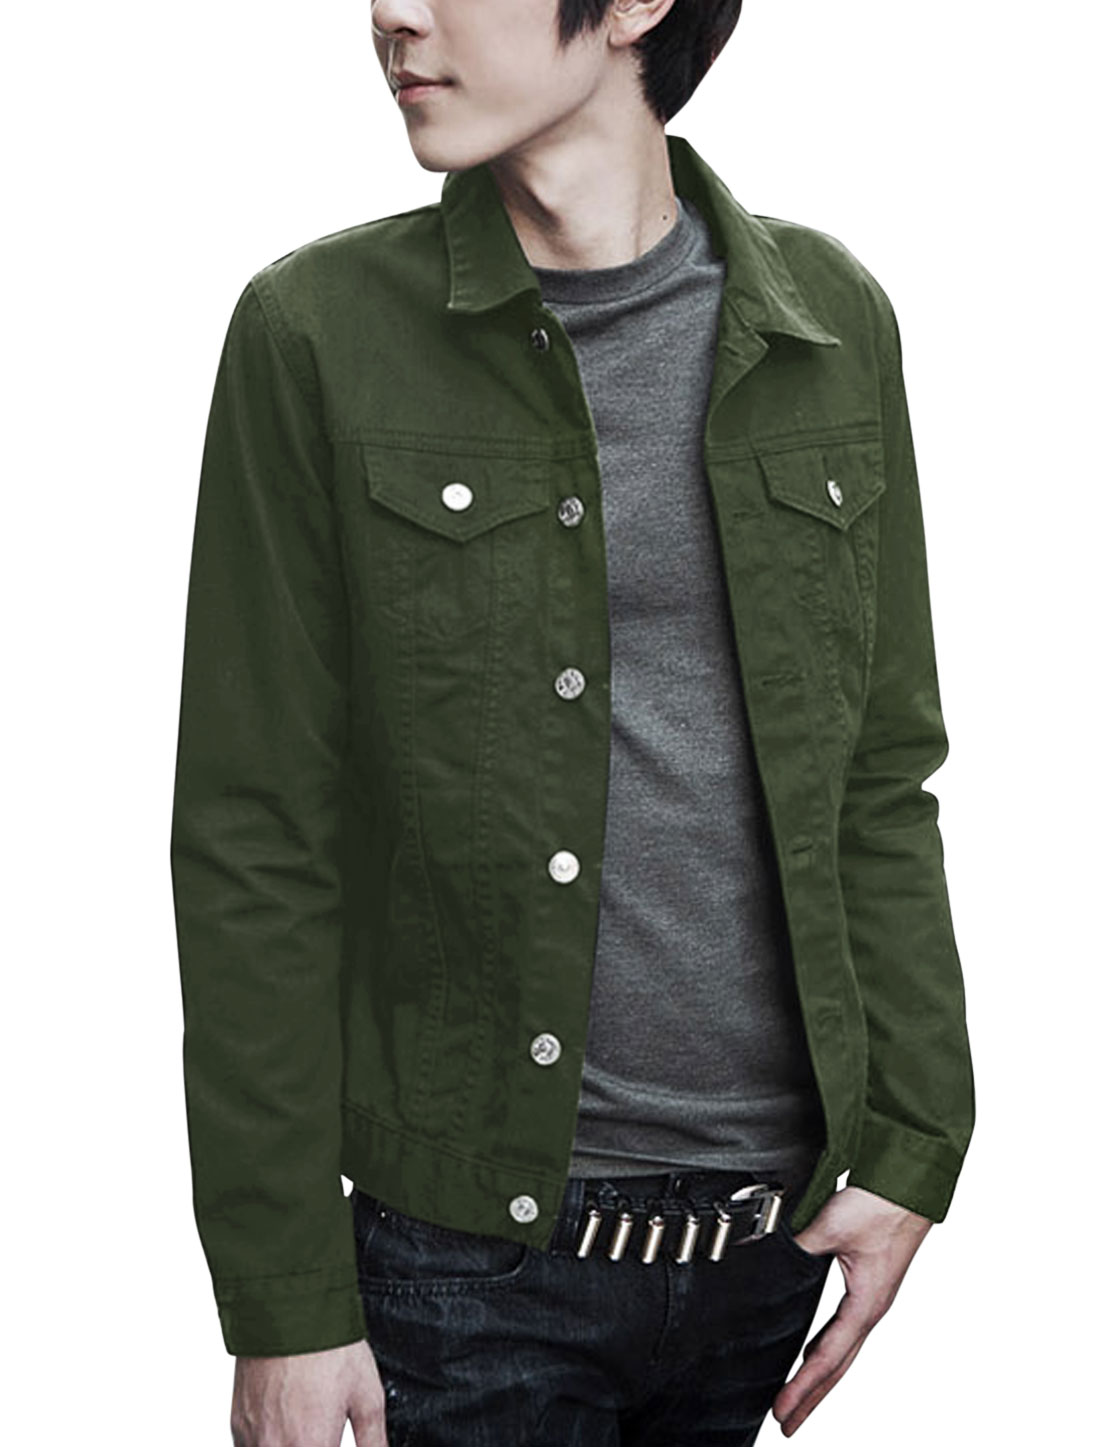 Man Fake Chest Pocket Decor Long Sleeves Army Green Jacket M